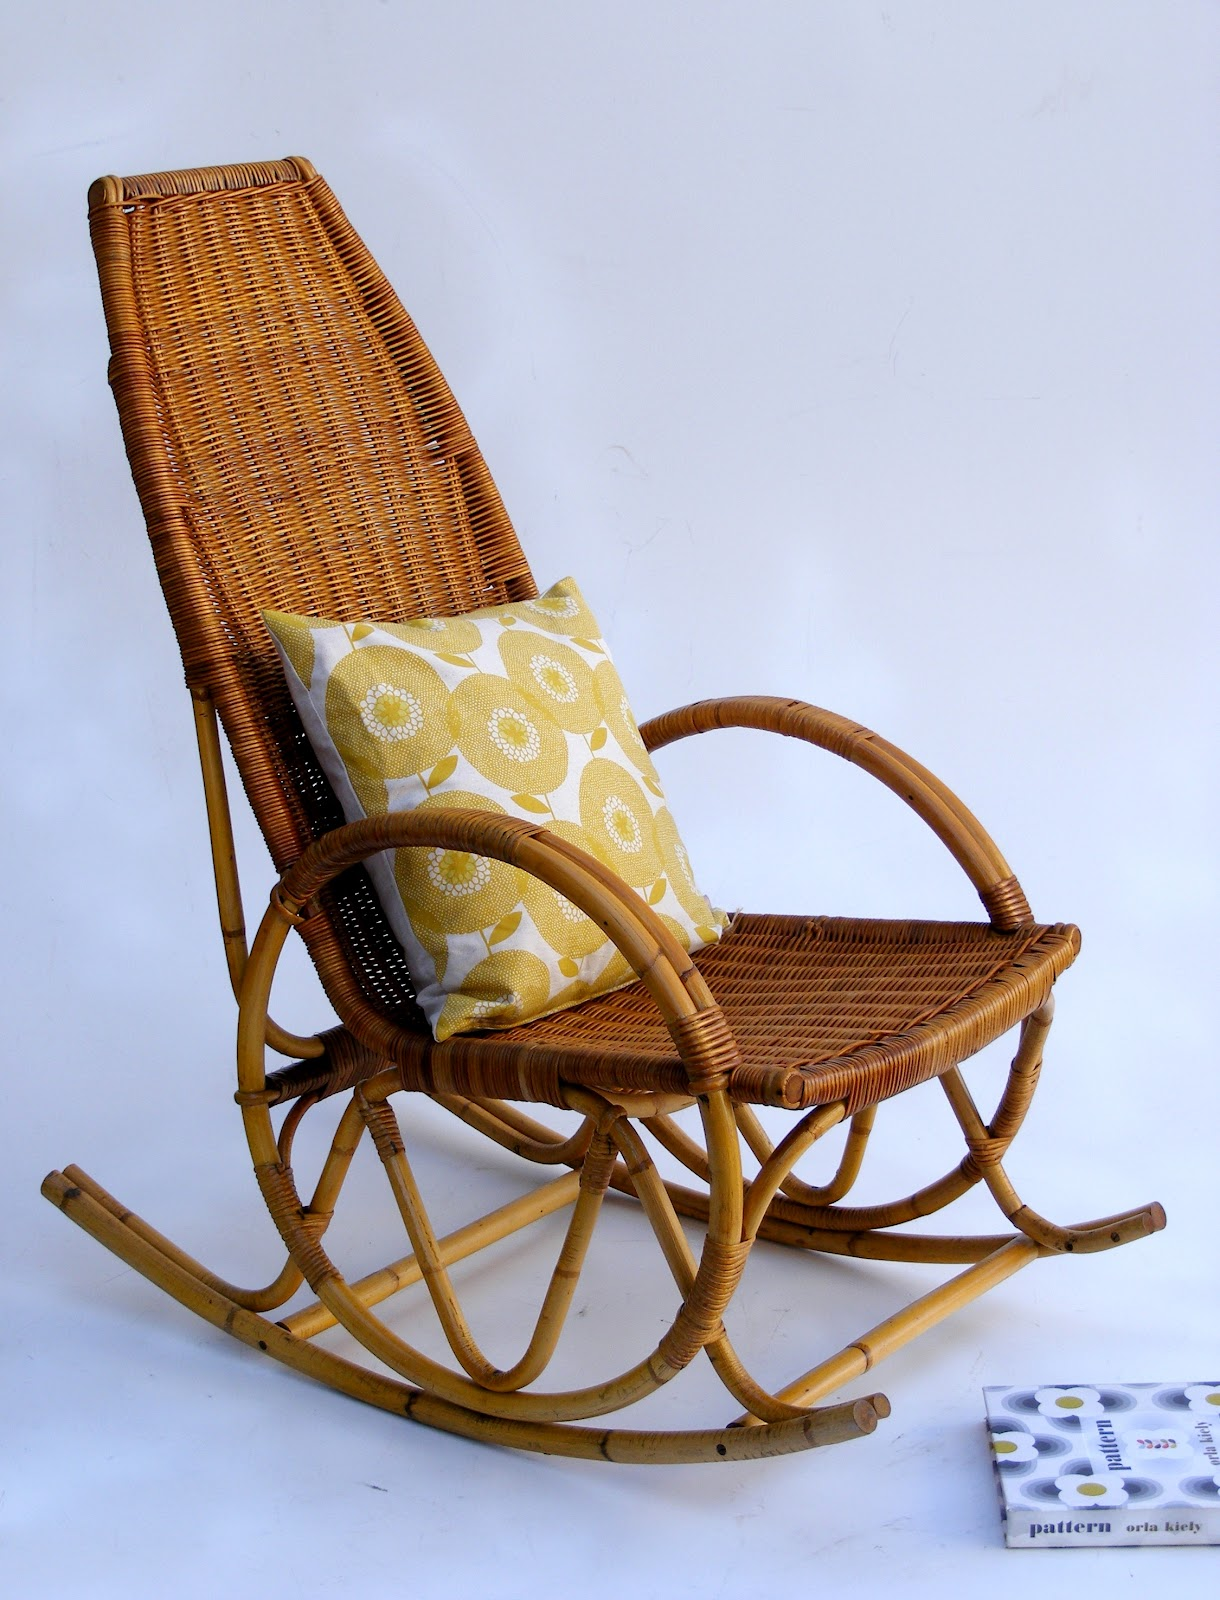 Vintage Wicker Rocking Chair Staples Accessories Vamp Furniture Category Bedside Pedestals